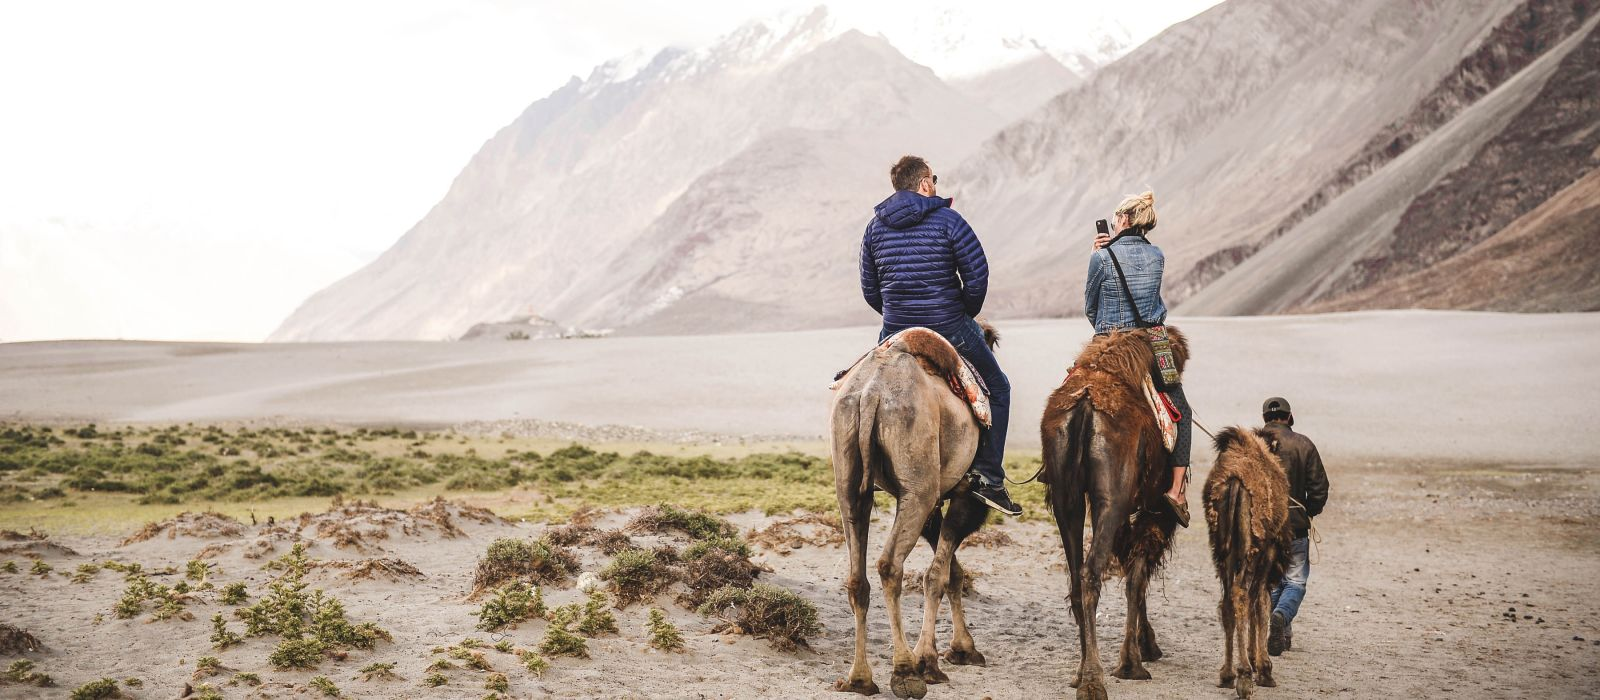 Is India safe? Camel riding in Nubra Valley, Ladakh, India